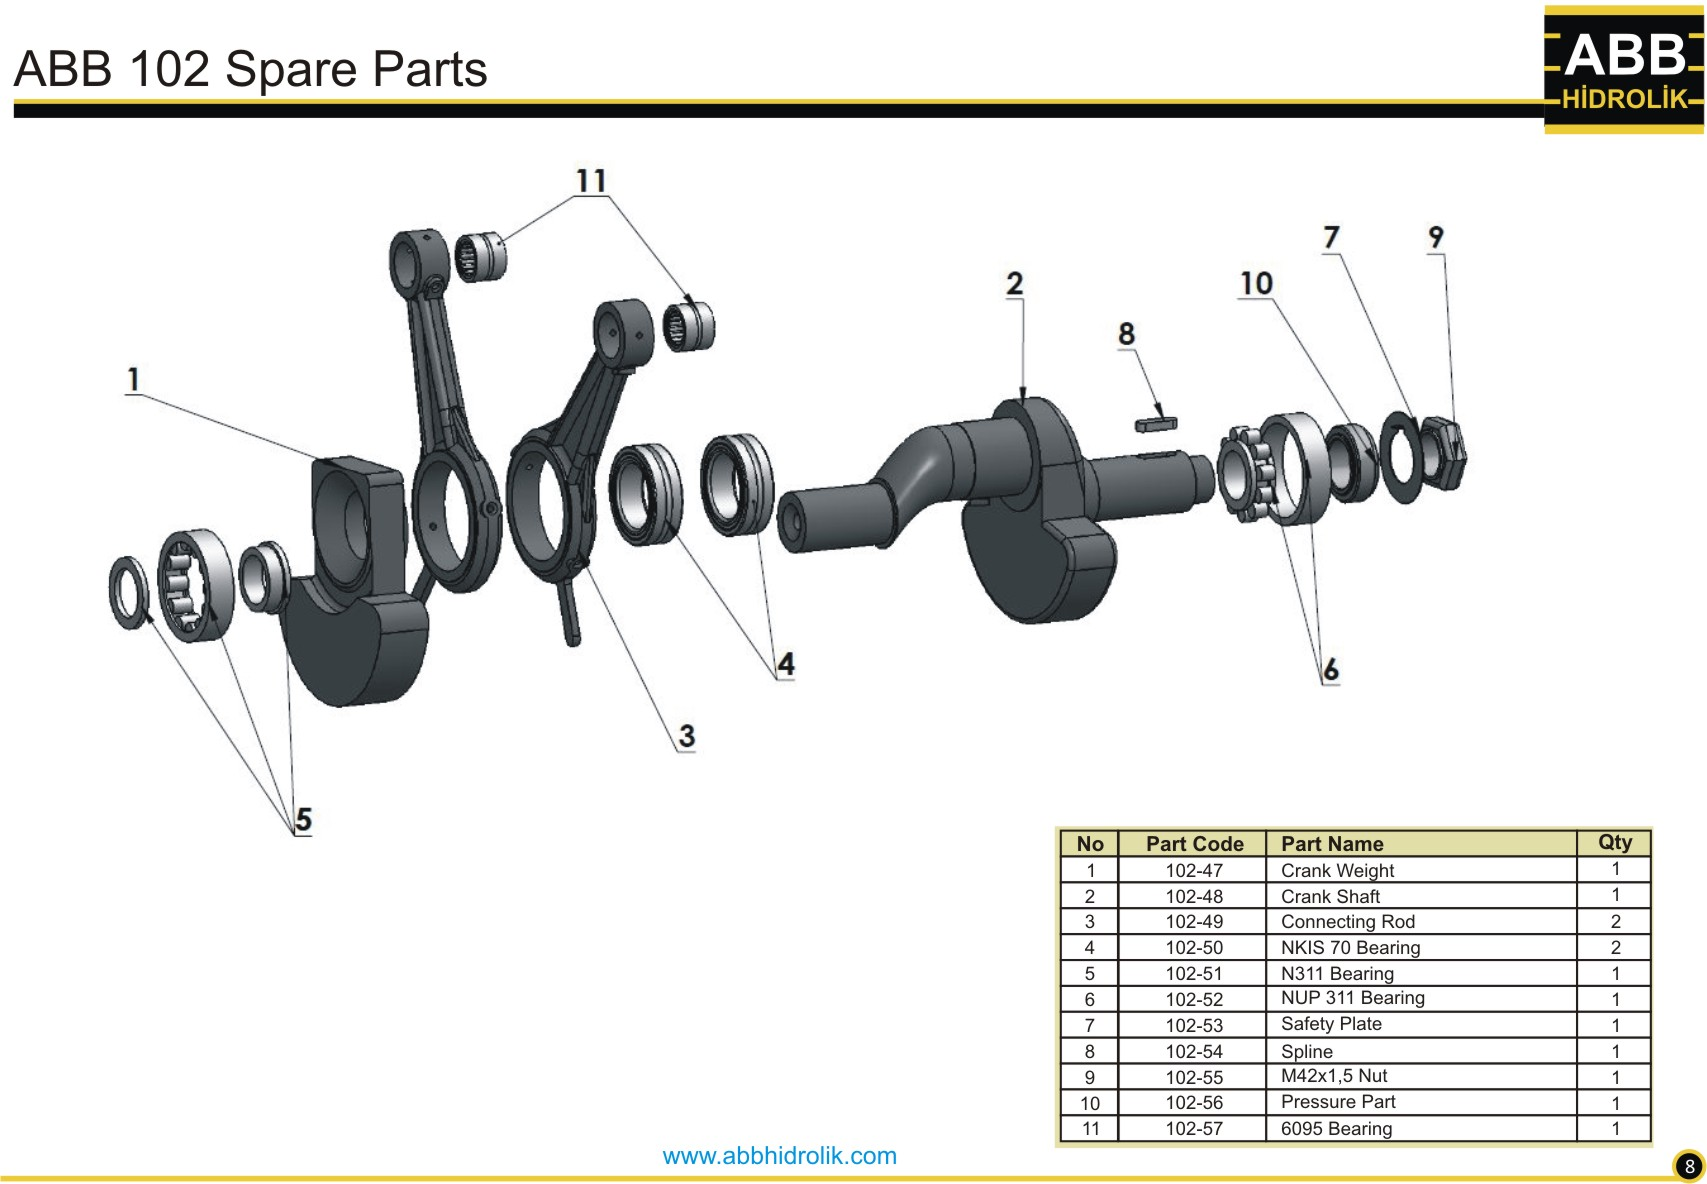 abb102_crankshaft_spec